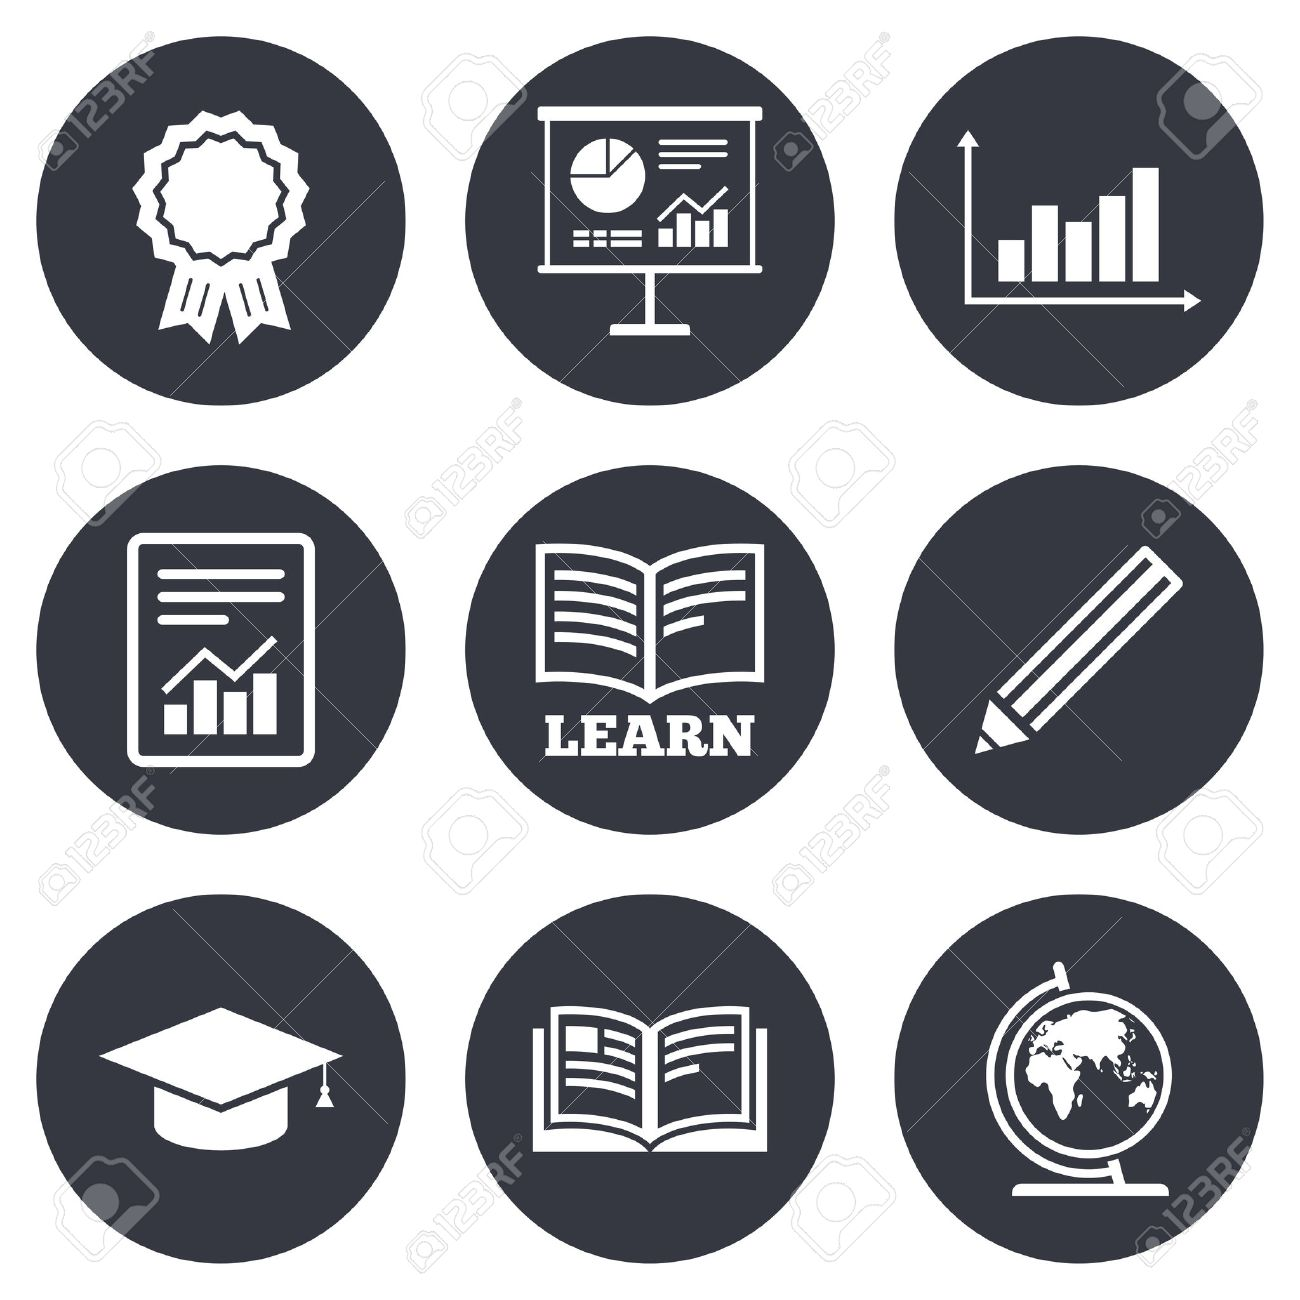 508919 Education Icon Stock Vector Illustration And Royalty Free